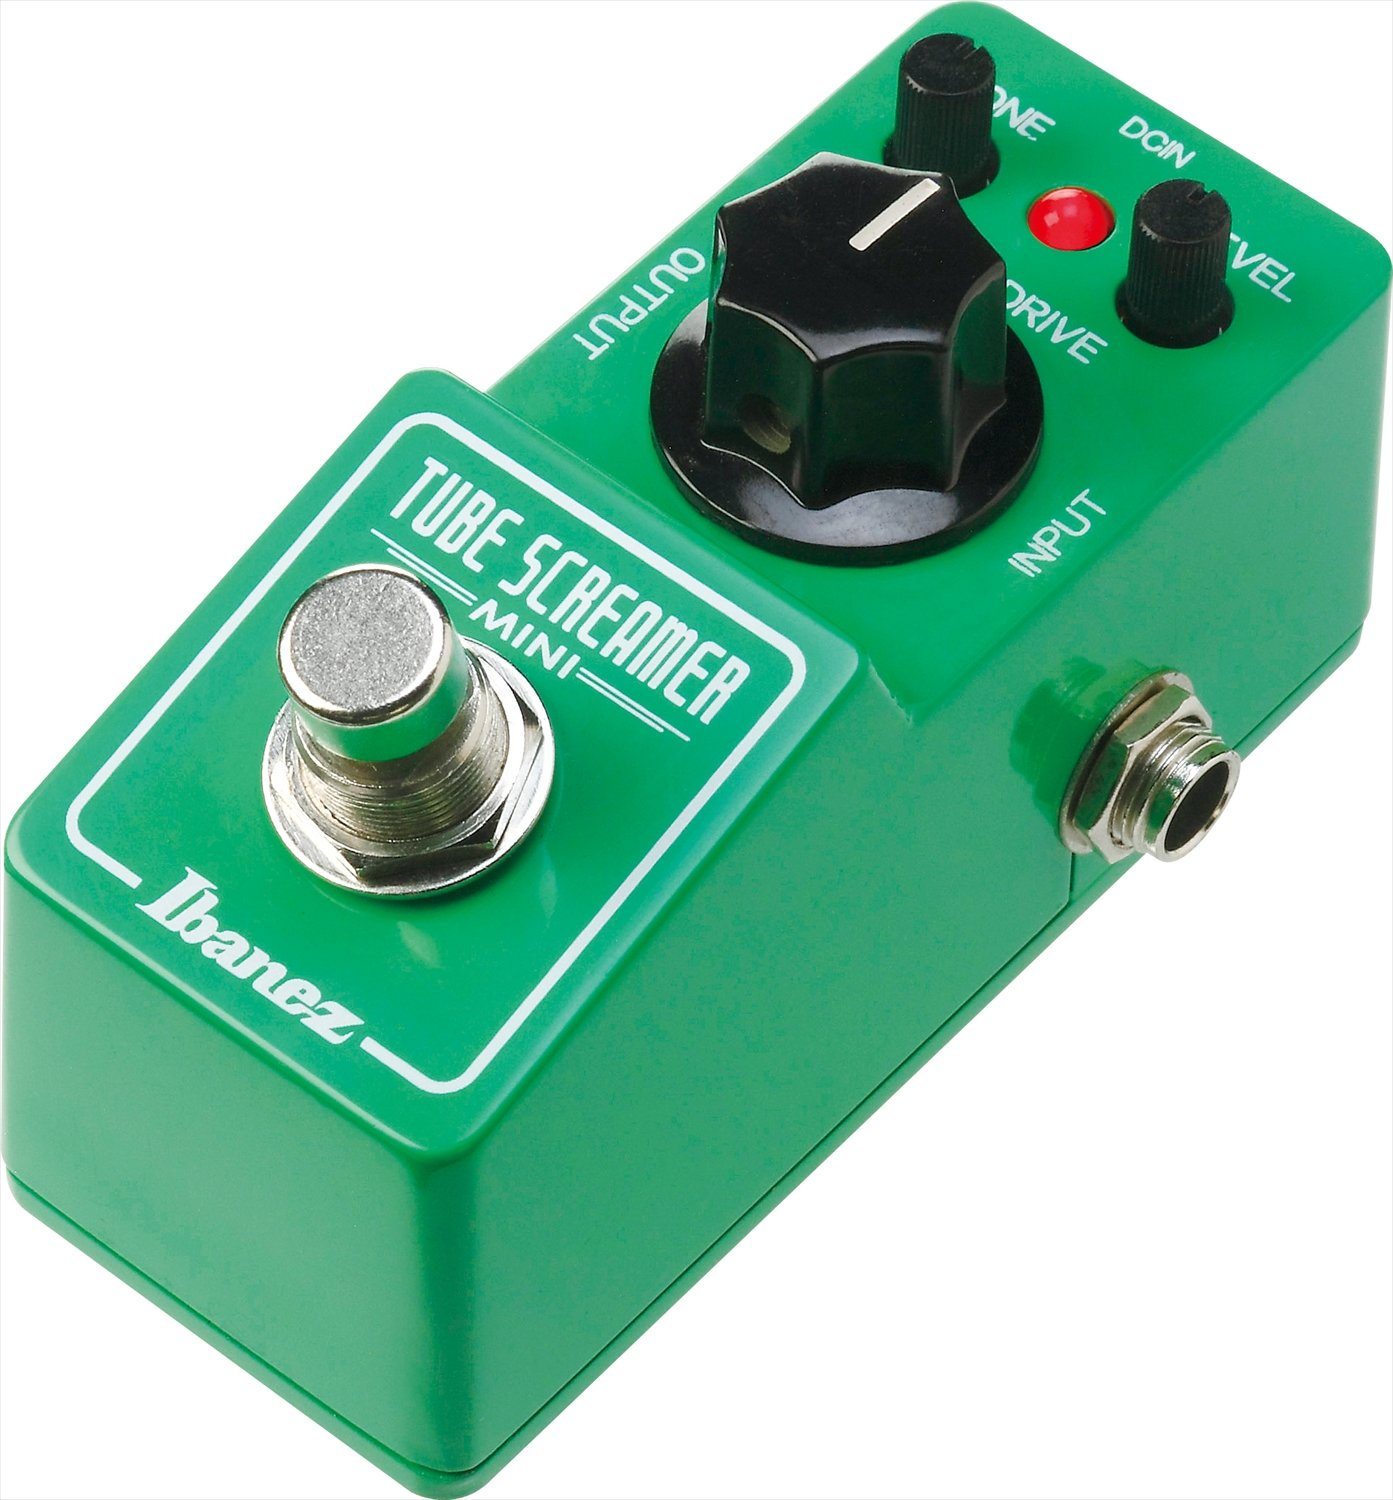 ibanez tube screamer mini musical instruments